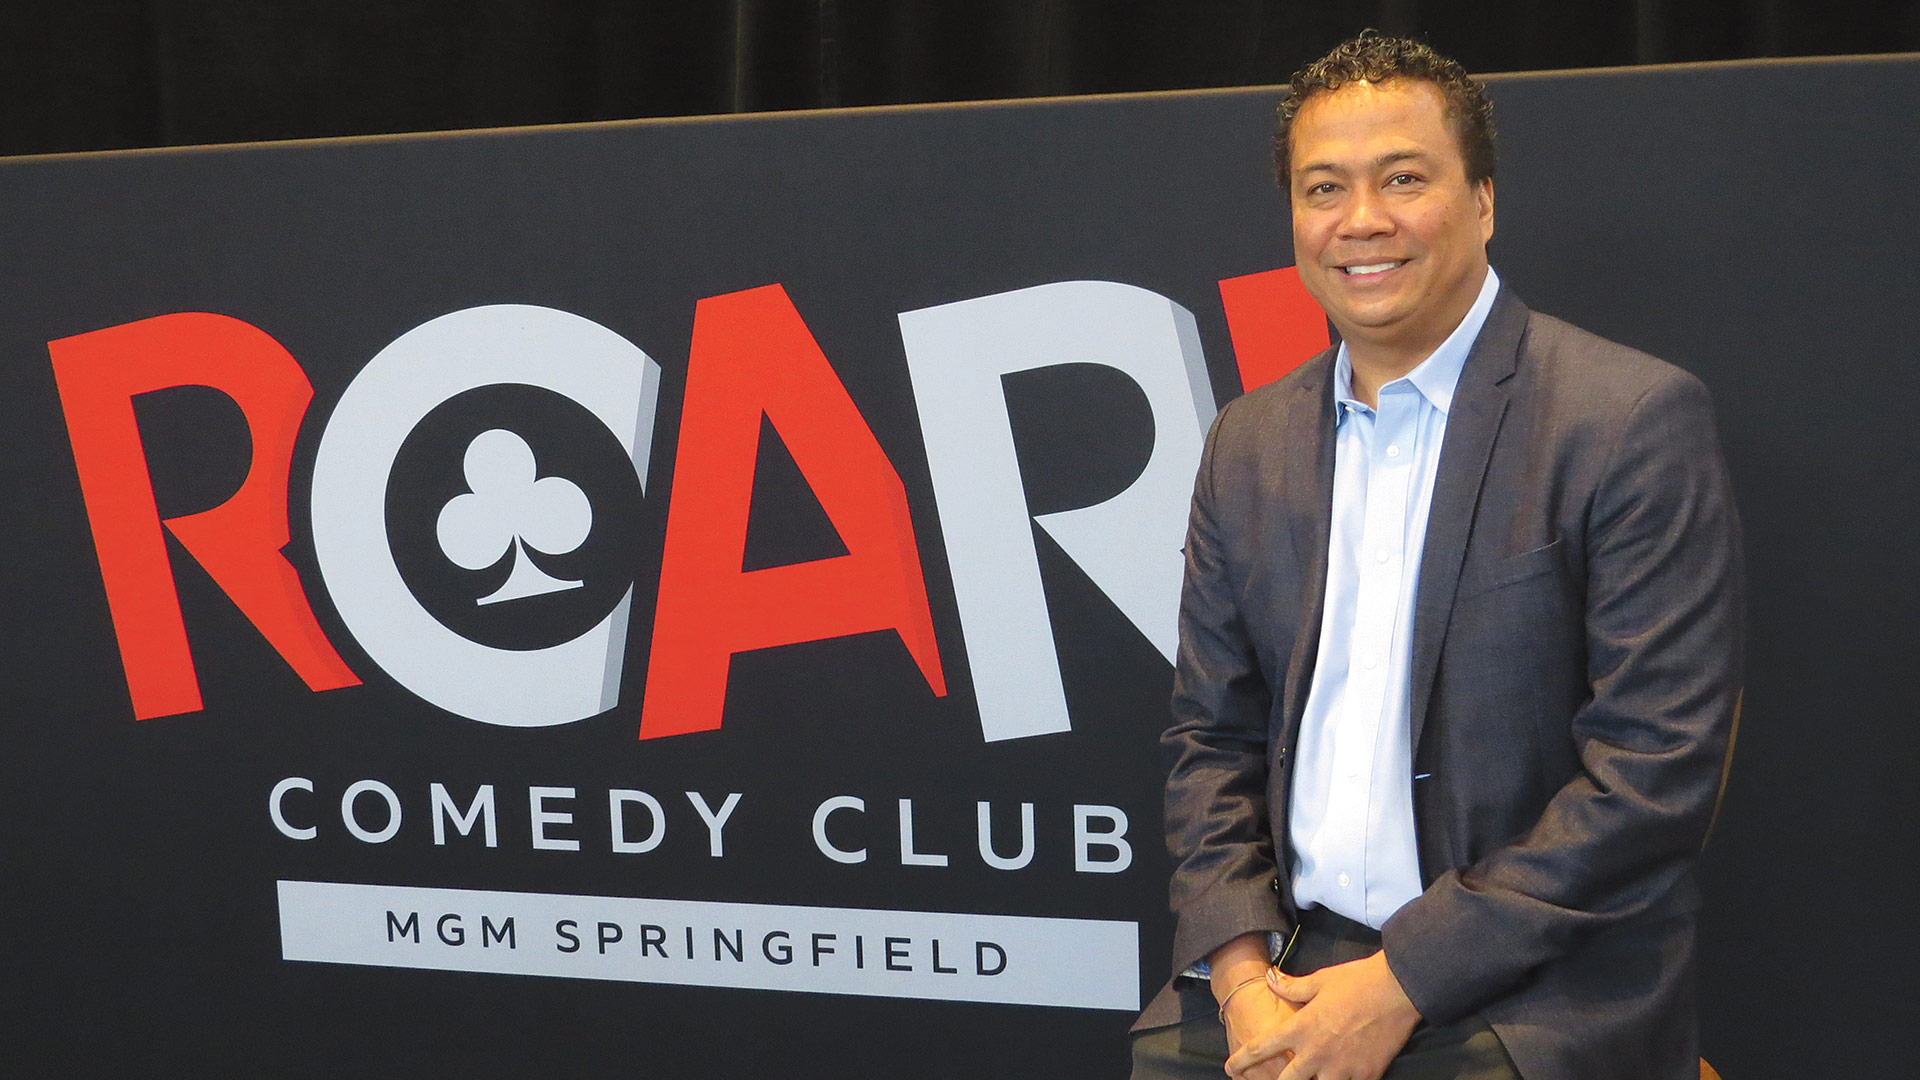 Mike Mathis says the ROAR! Comedy Club has become a solid attraction for MGM Springfield